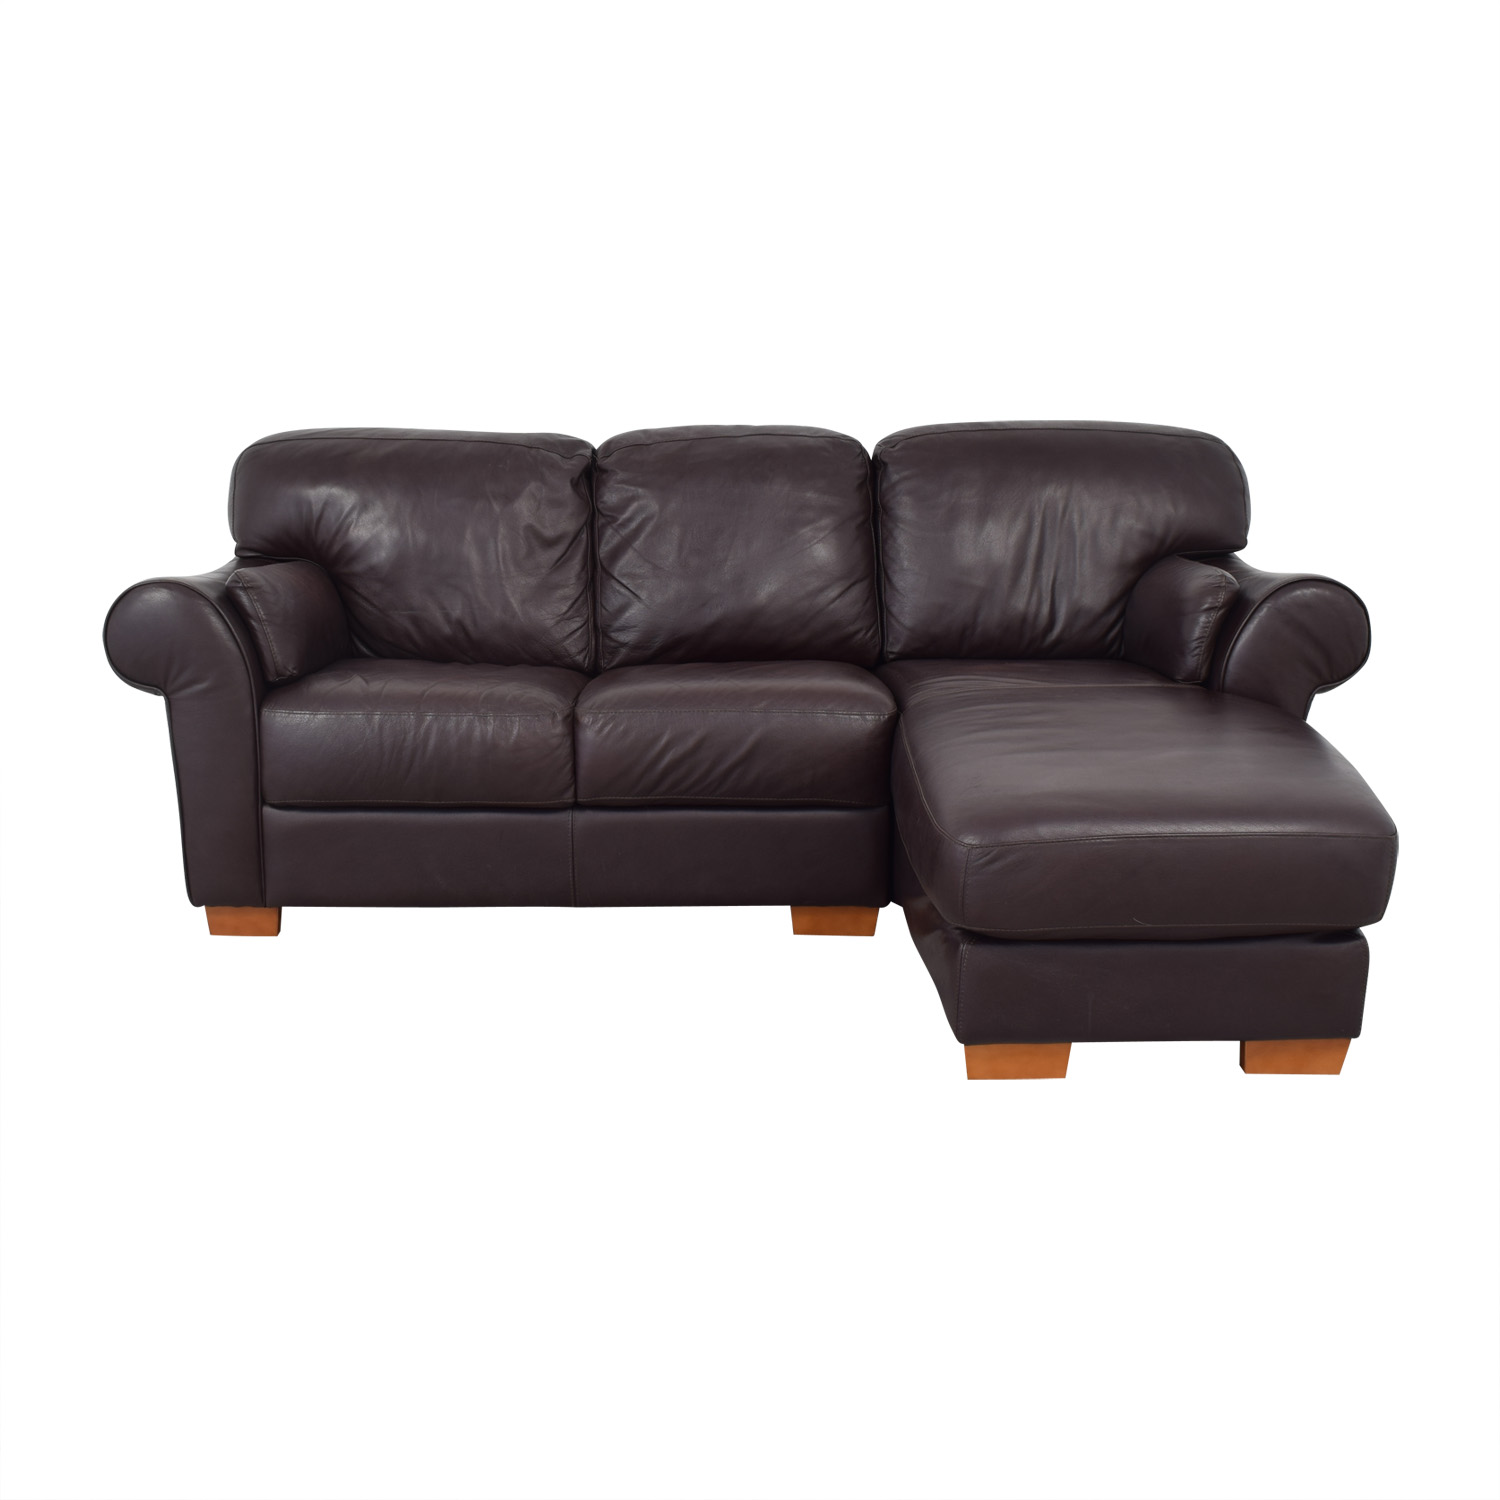 buy Raymour & Flanigan Chaise Sectional Sofa Raymour & Flanigan